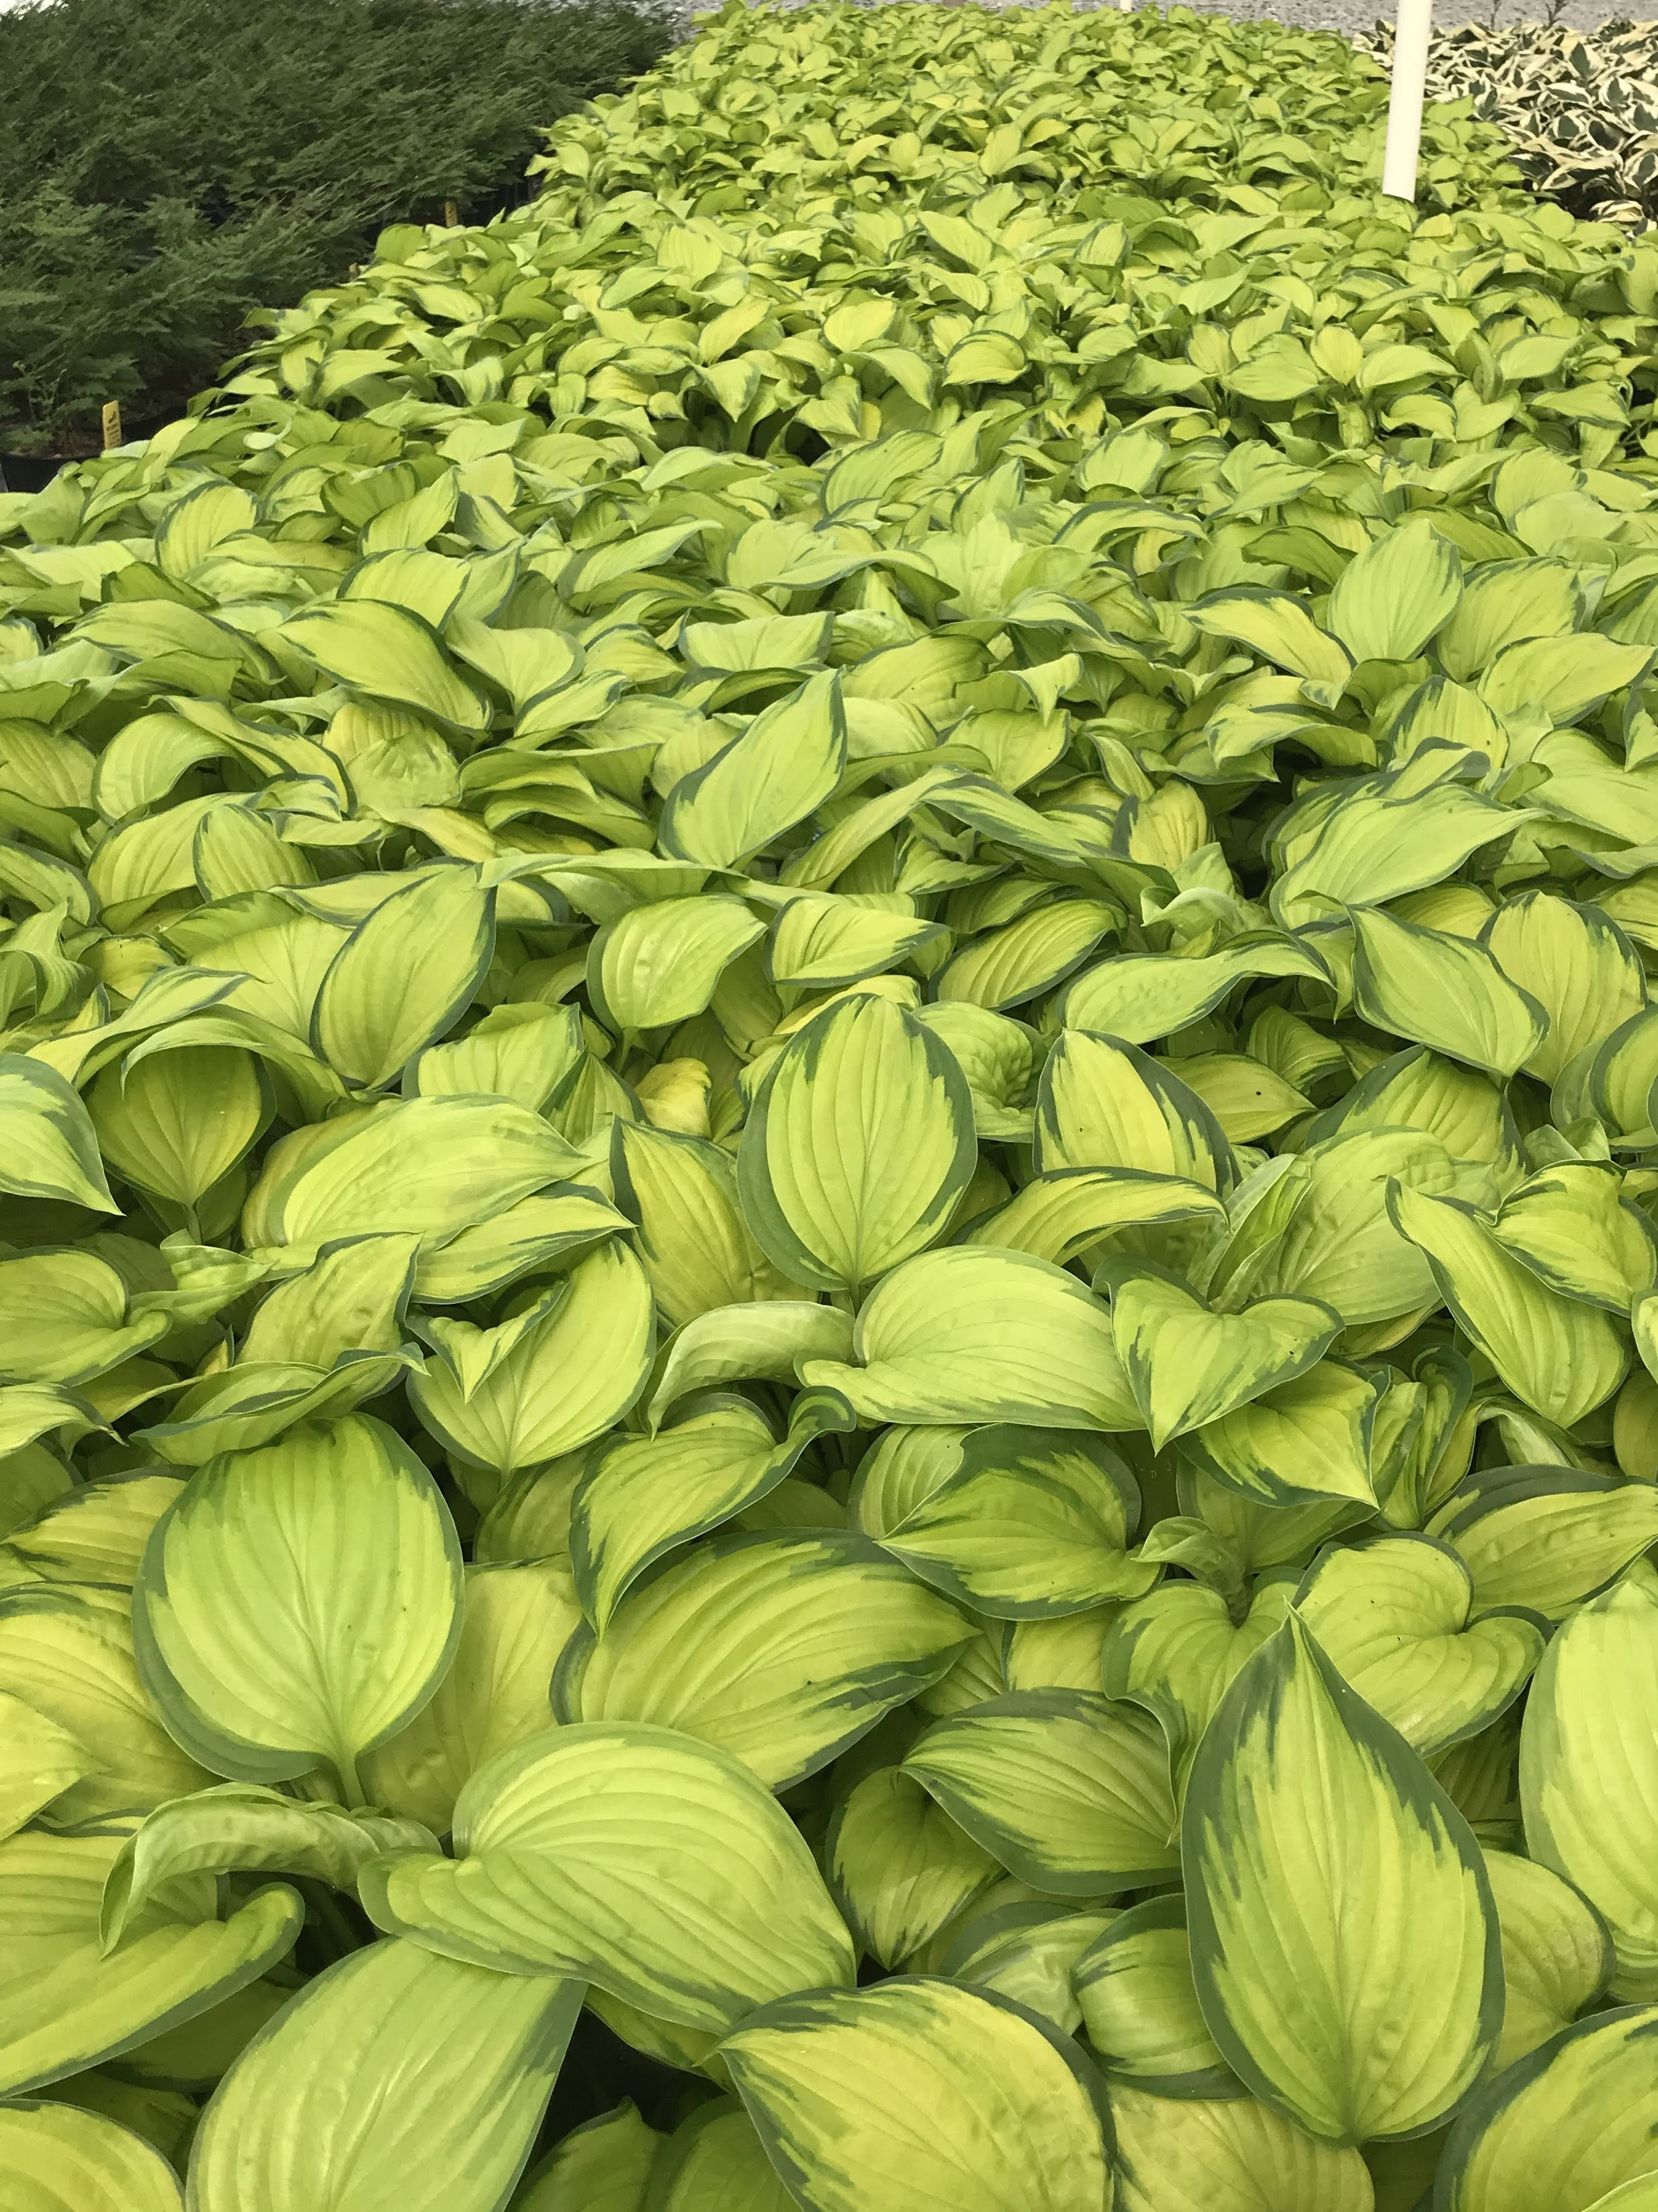 Hosta 'Stained Glass' 1 gallon